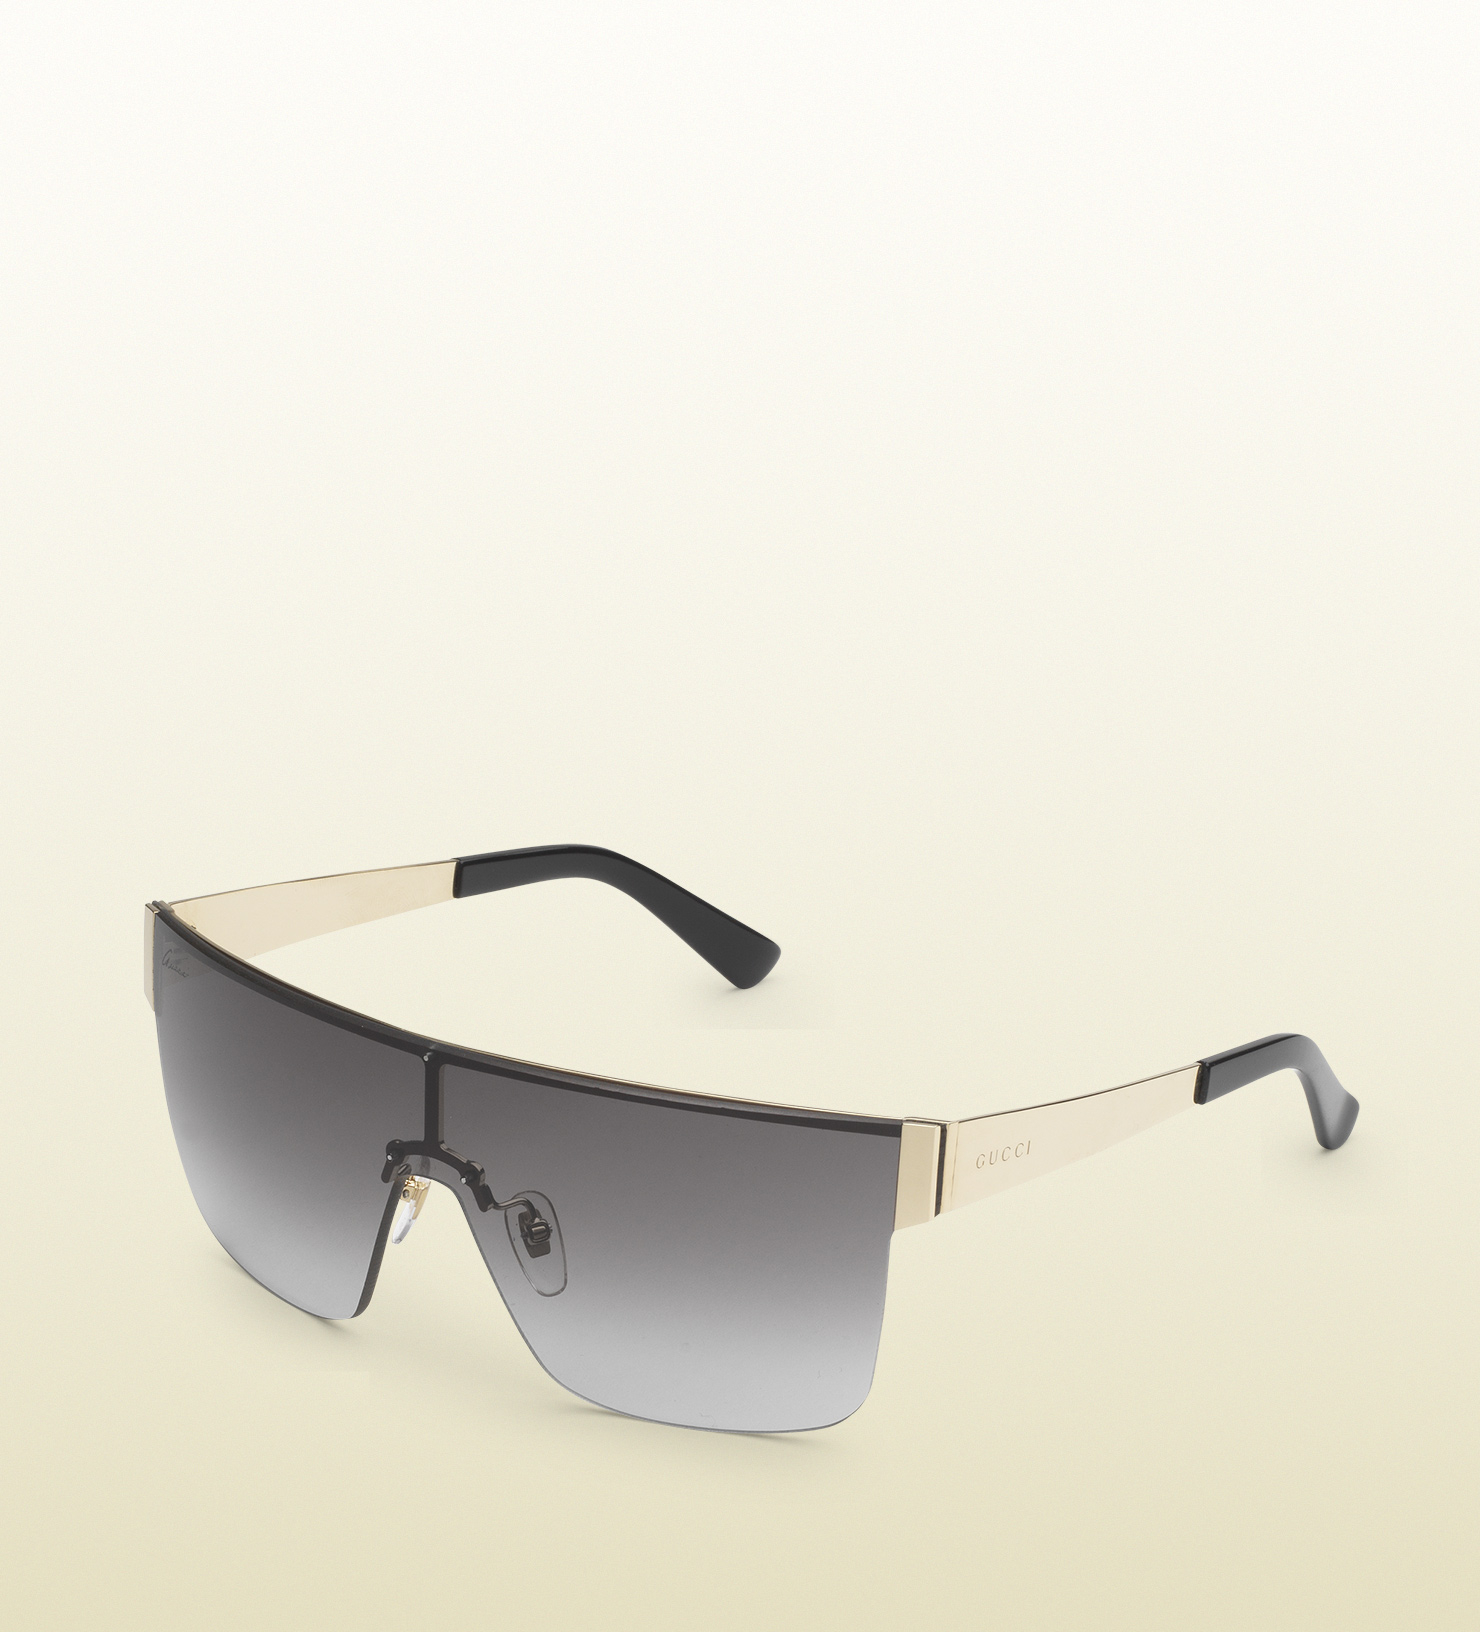 b69df595321 Lyst - Gucci Mask-frame Metal Sunglasses in Metallic for Men